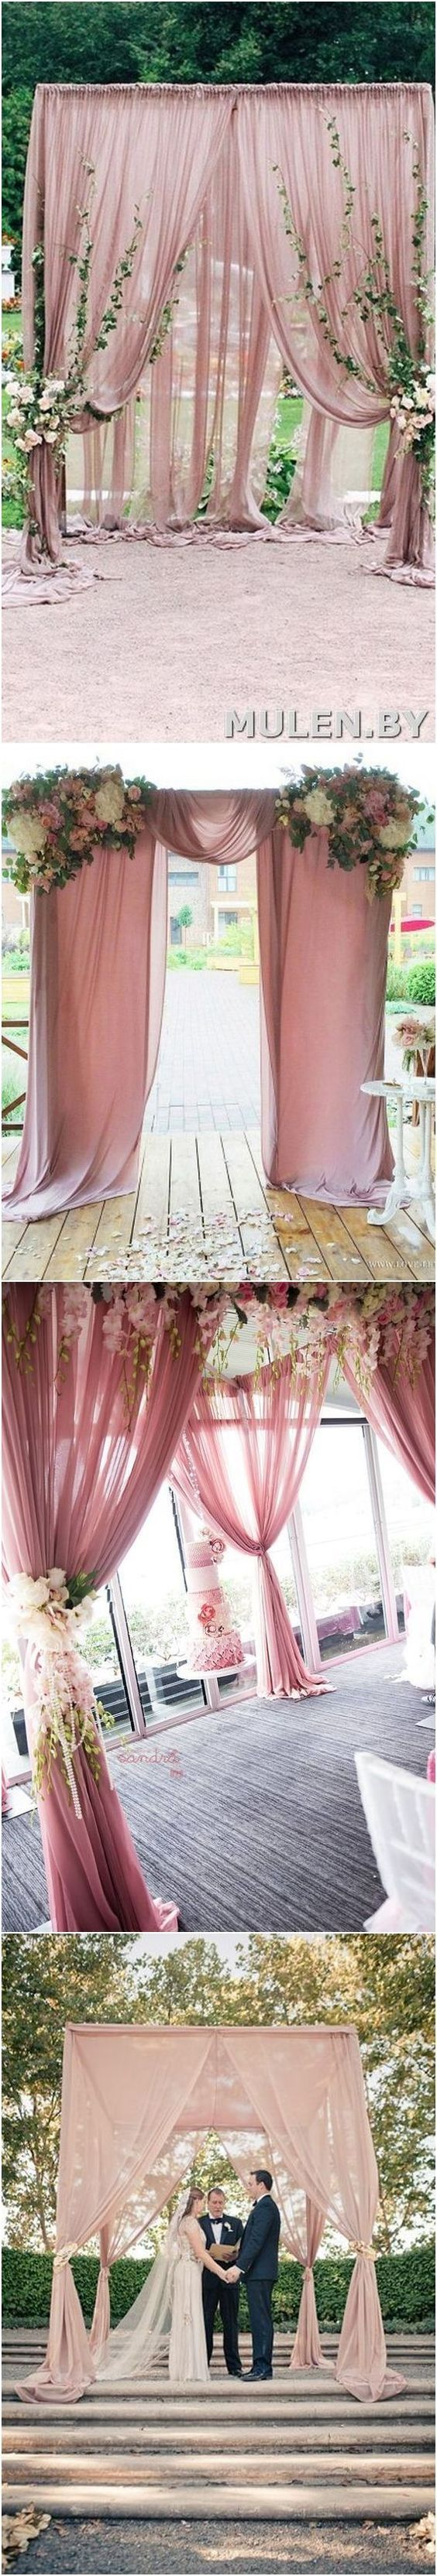 Dusty rose outside rustic wedding color ideas. Rustic outdoor wedding idea is more and more popular recently, if you want to make your wedding special, please feel free to get some inspiration from the gallery.